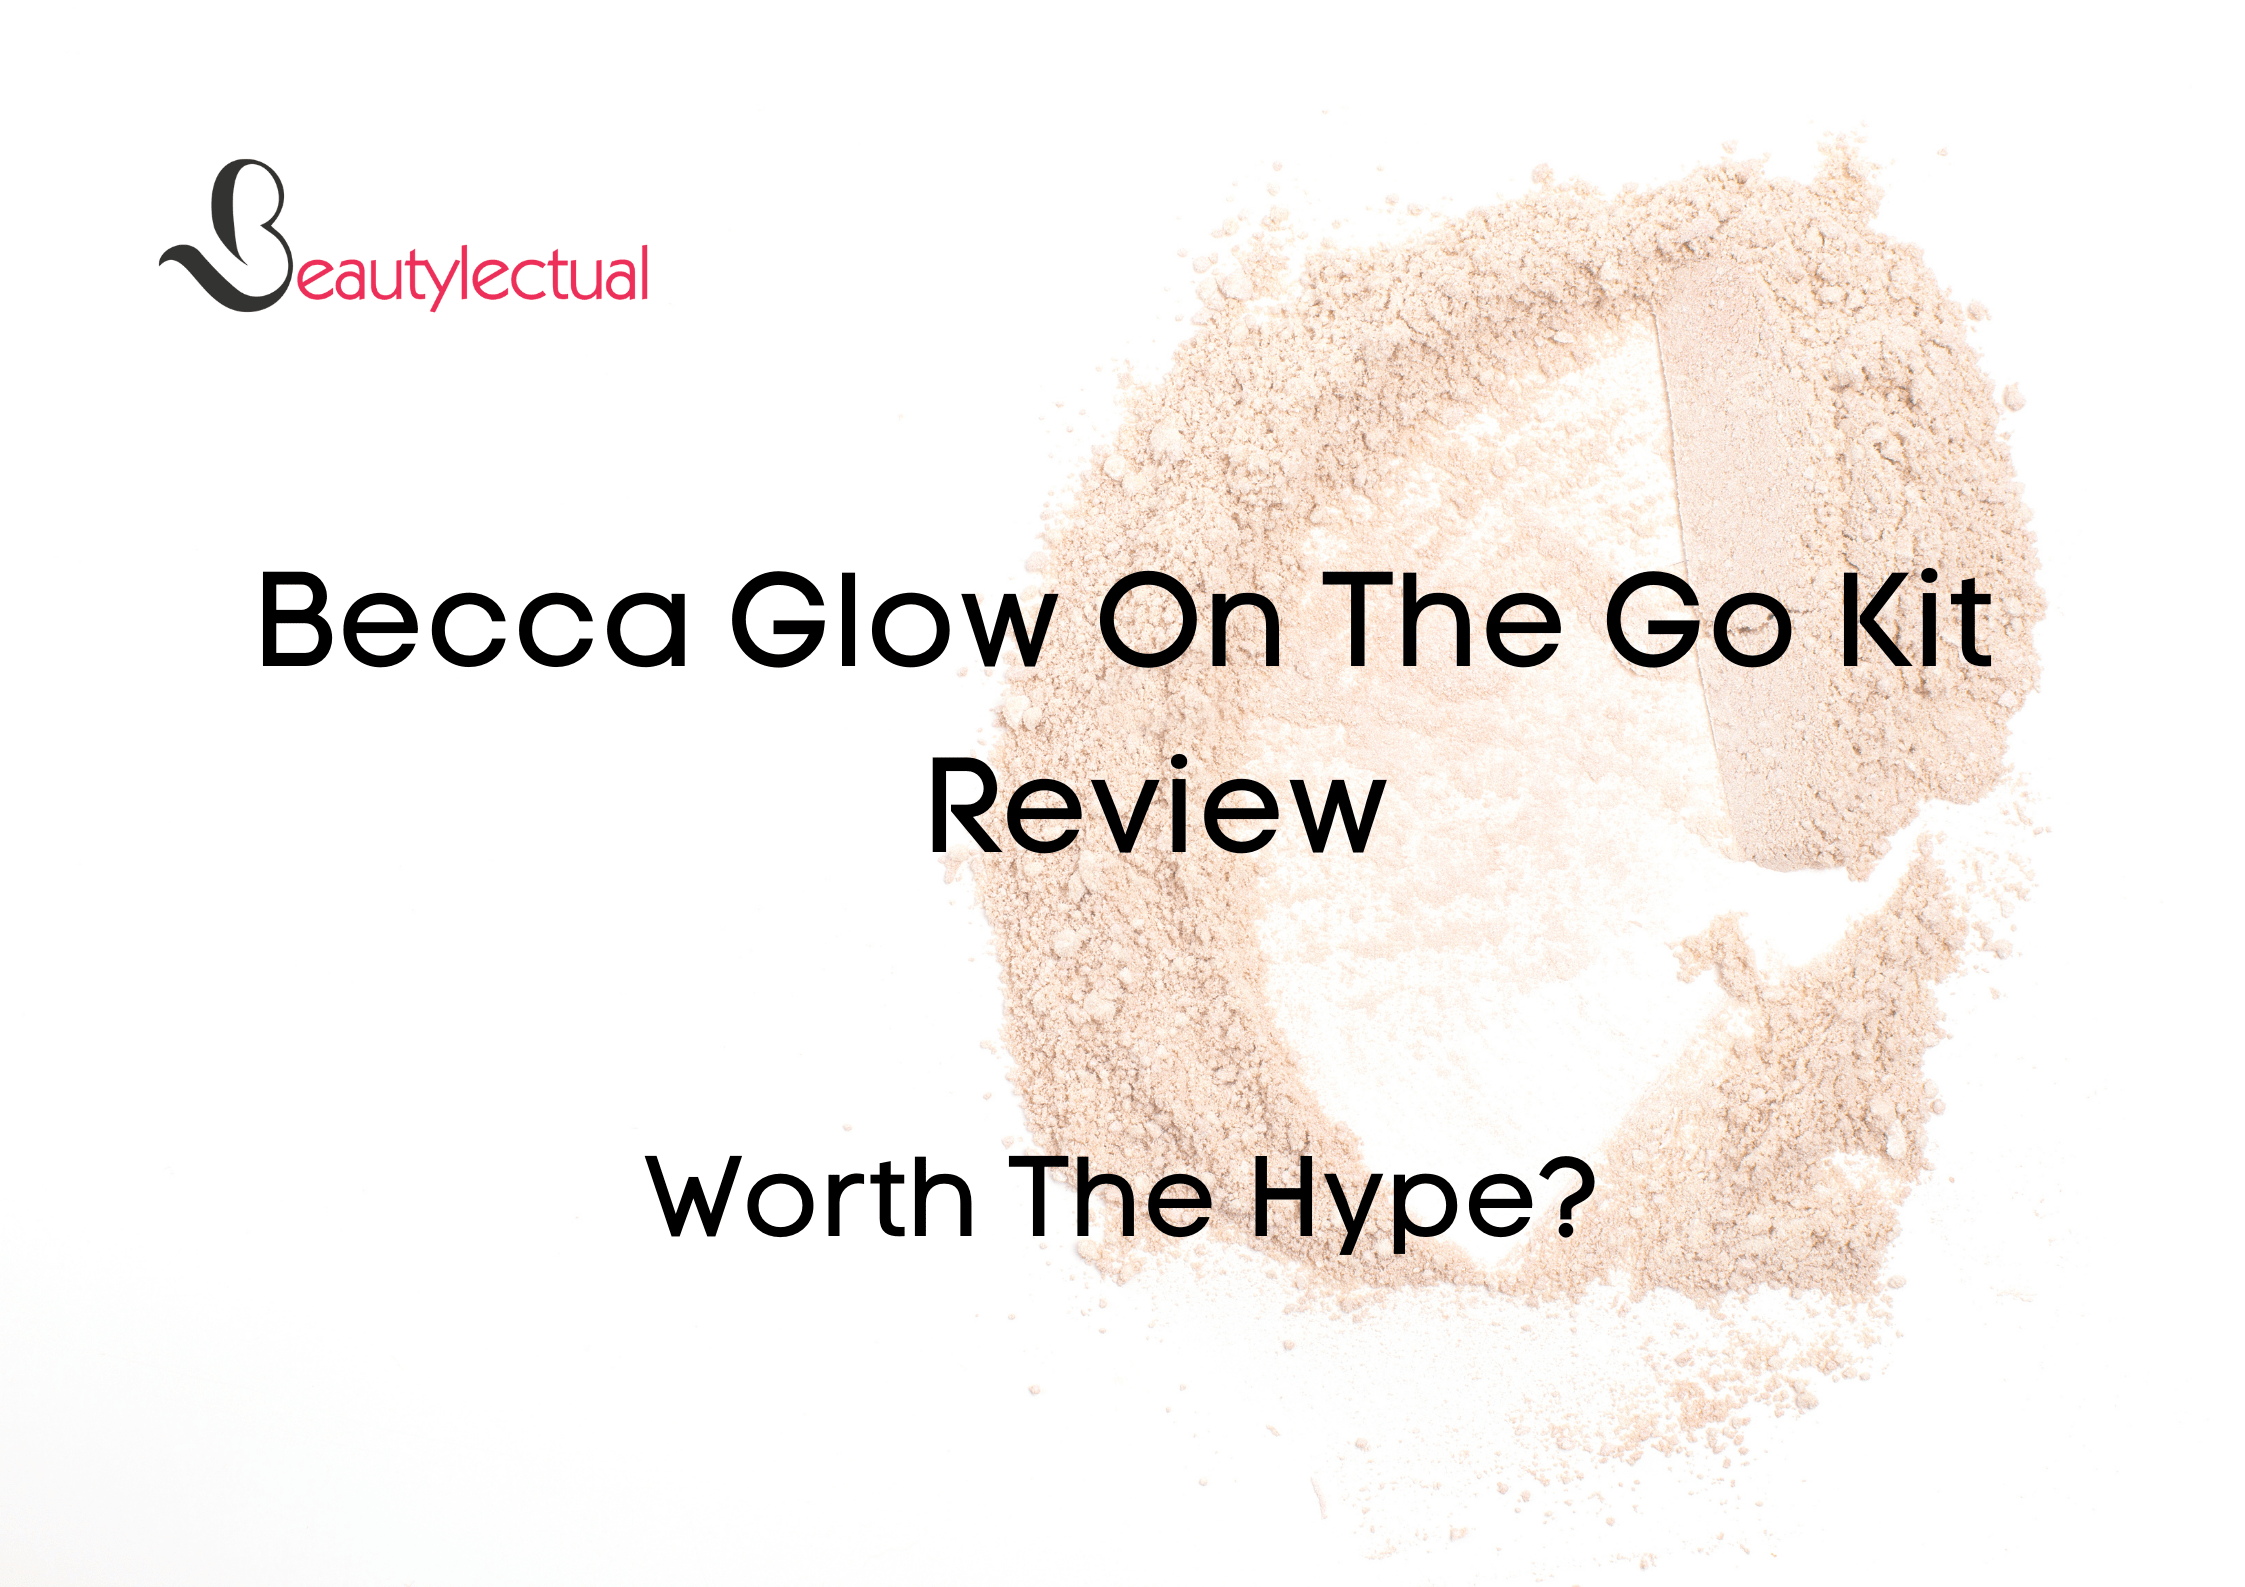 Becca Glow On The Go Kit Review